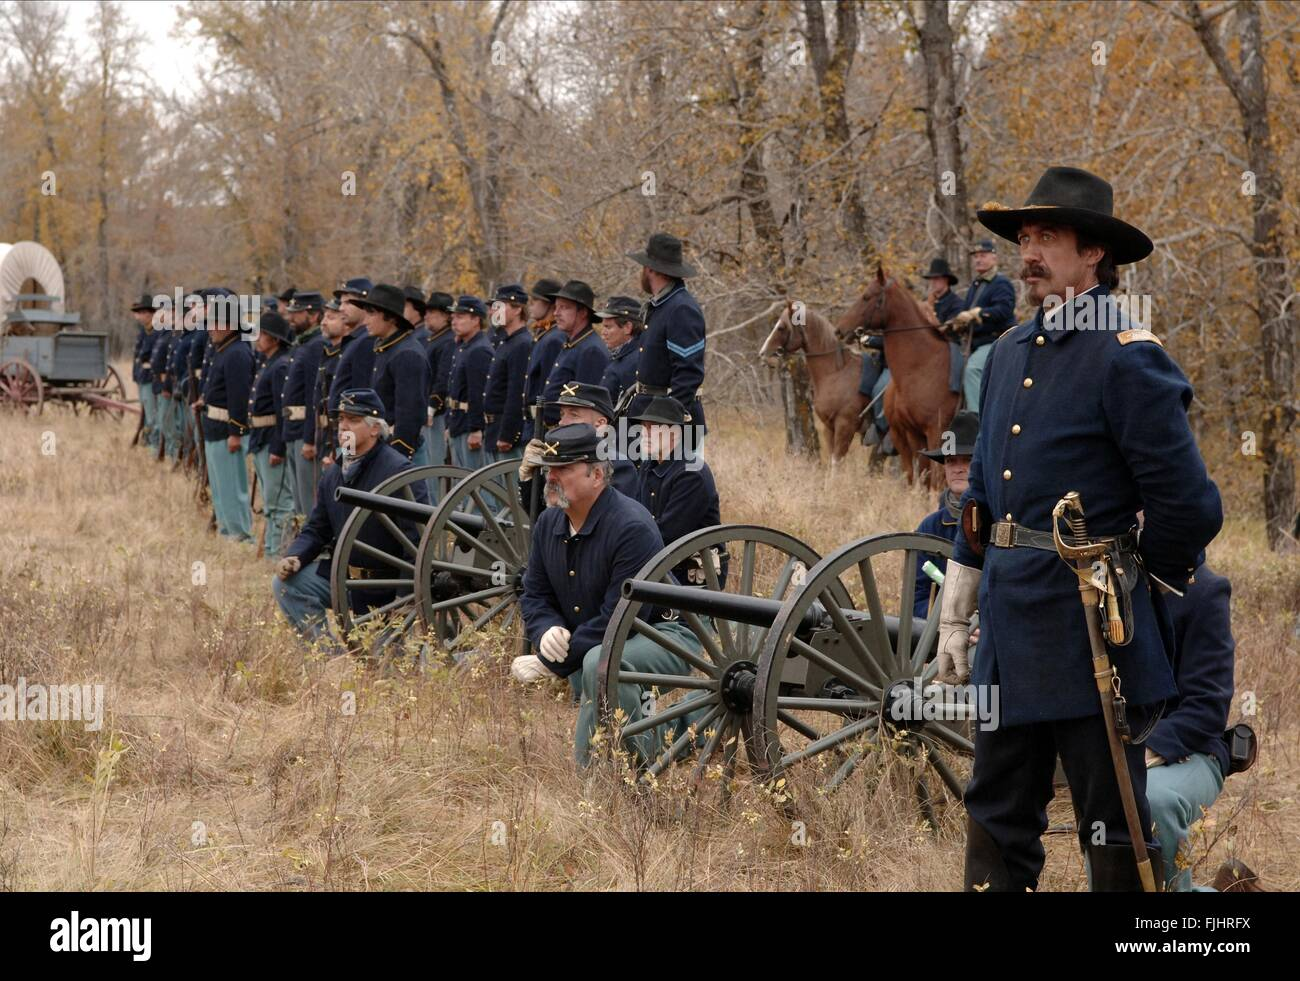 ARMY SCENE BURY MY HEART AT WOUNDED KNEE (2007) - Stock Image